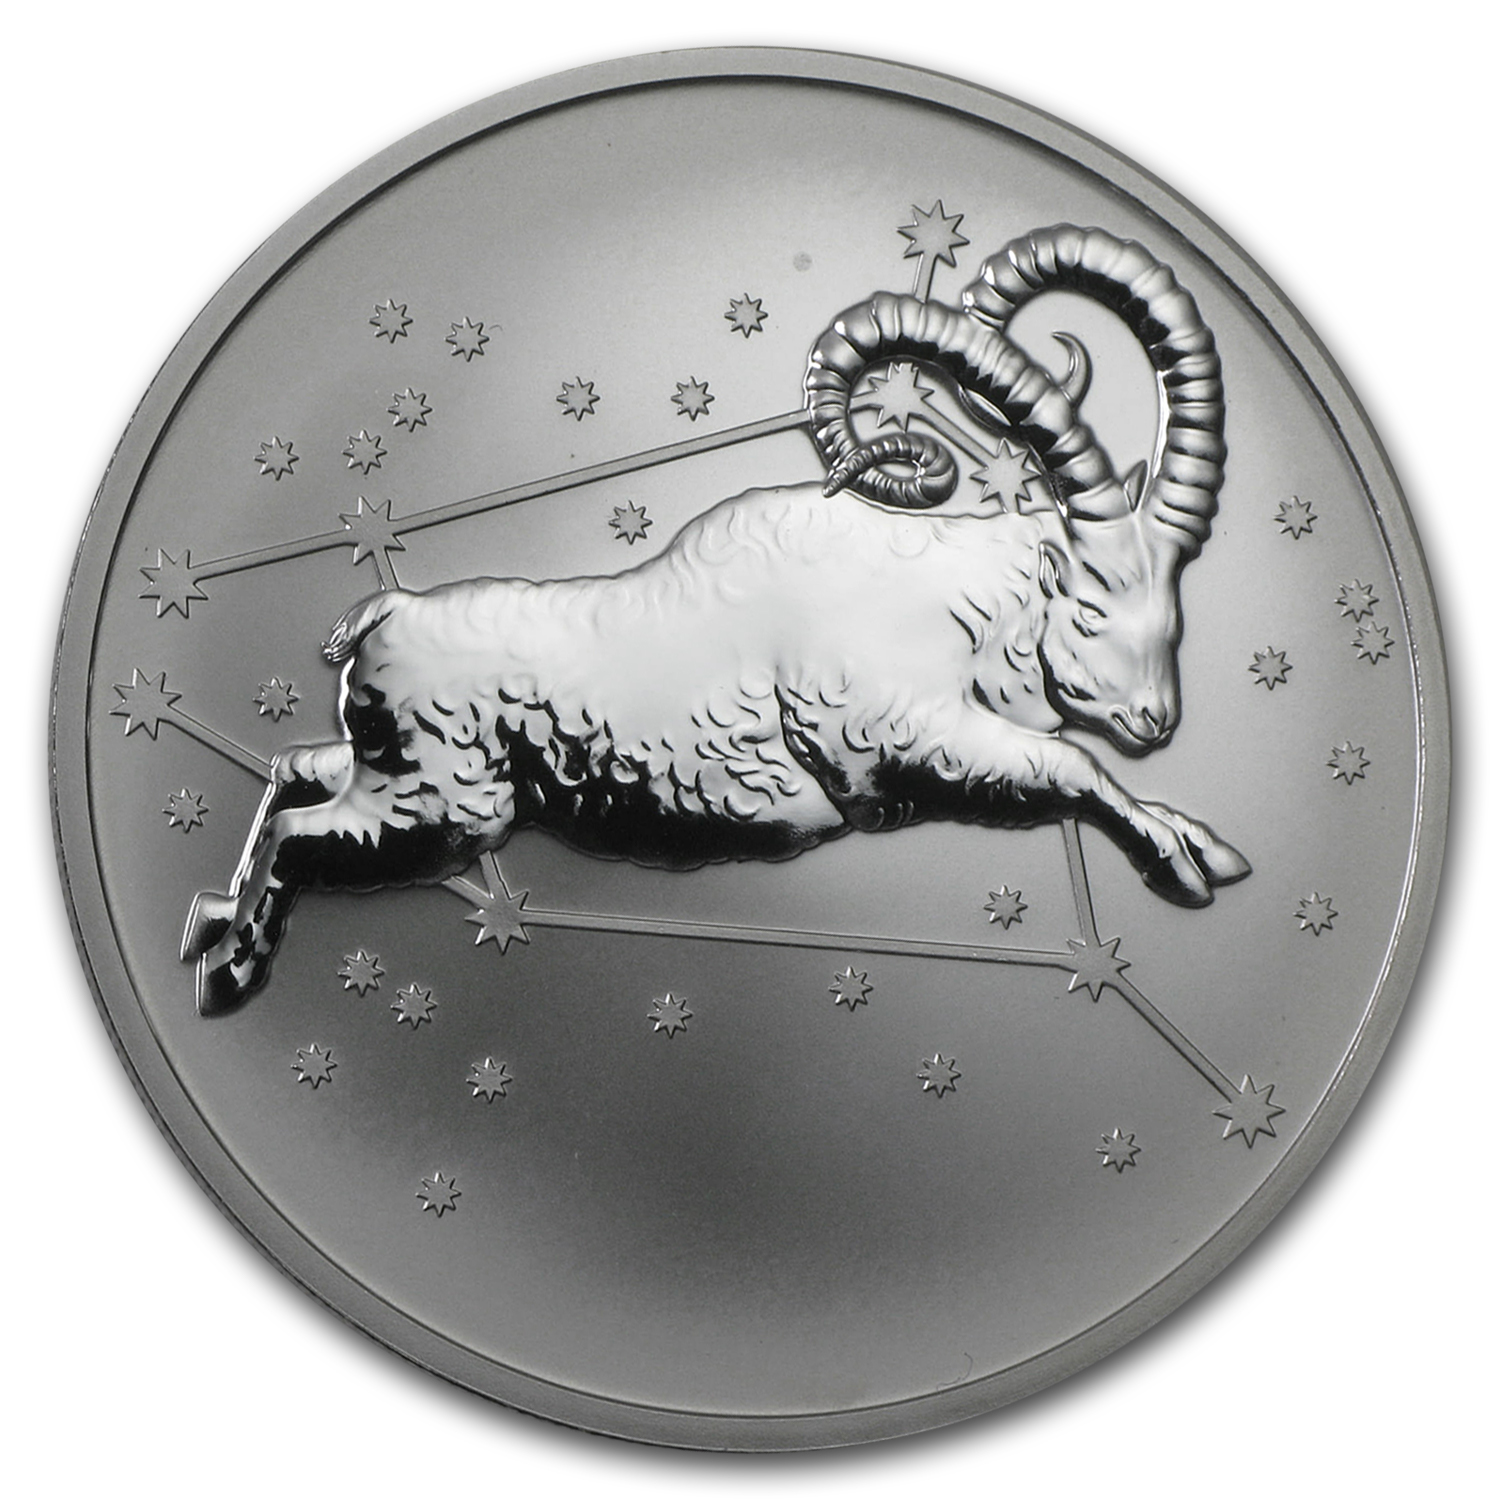 2015 Tokelau 1 oz Silver $5 Aries, the Ram Reverse Proof